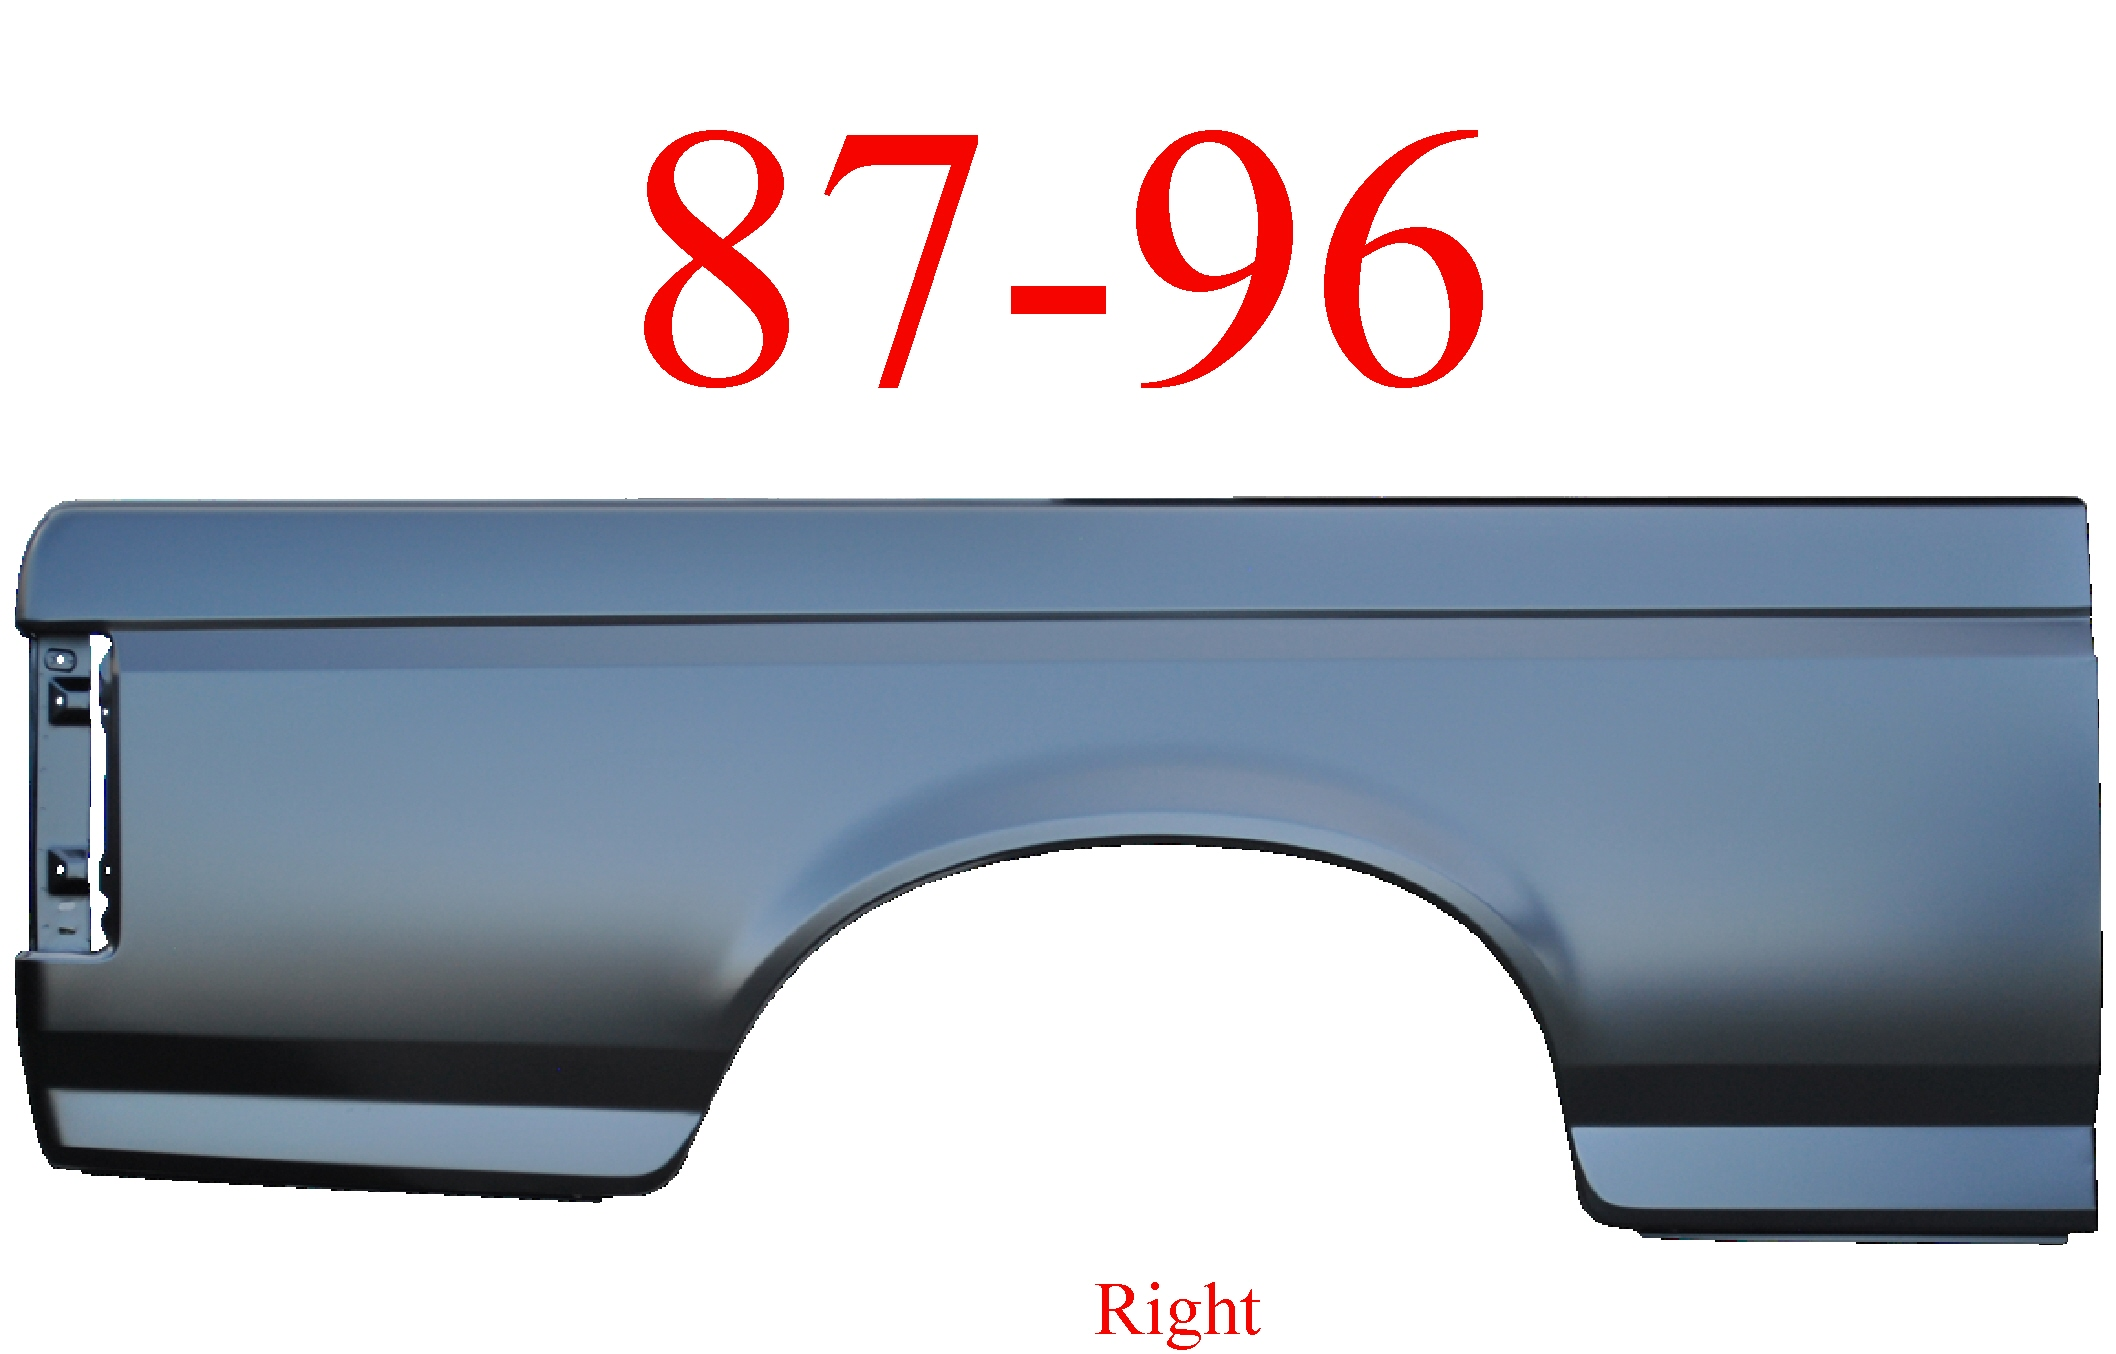 87-96 Ford Right 6.5' Bed Side